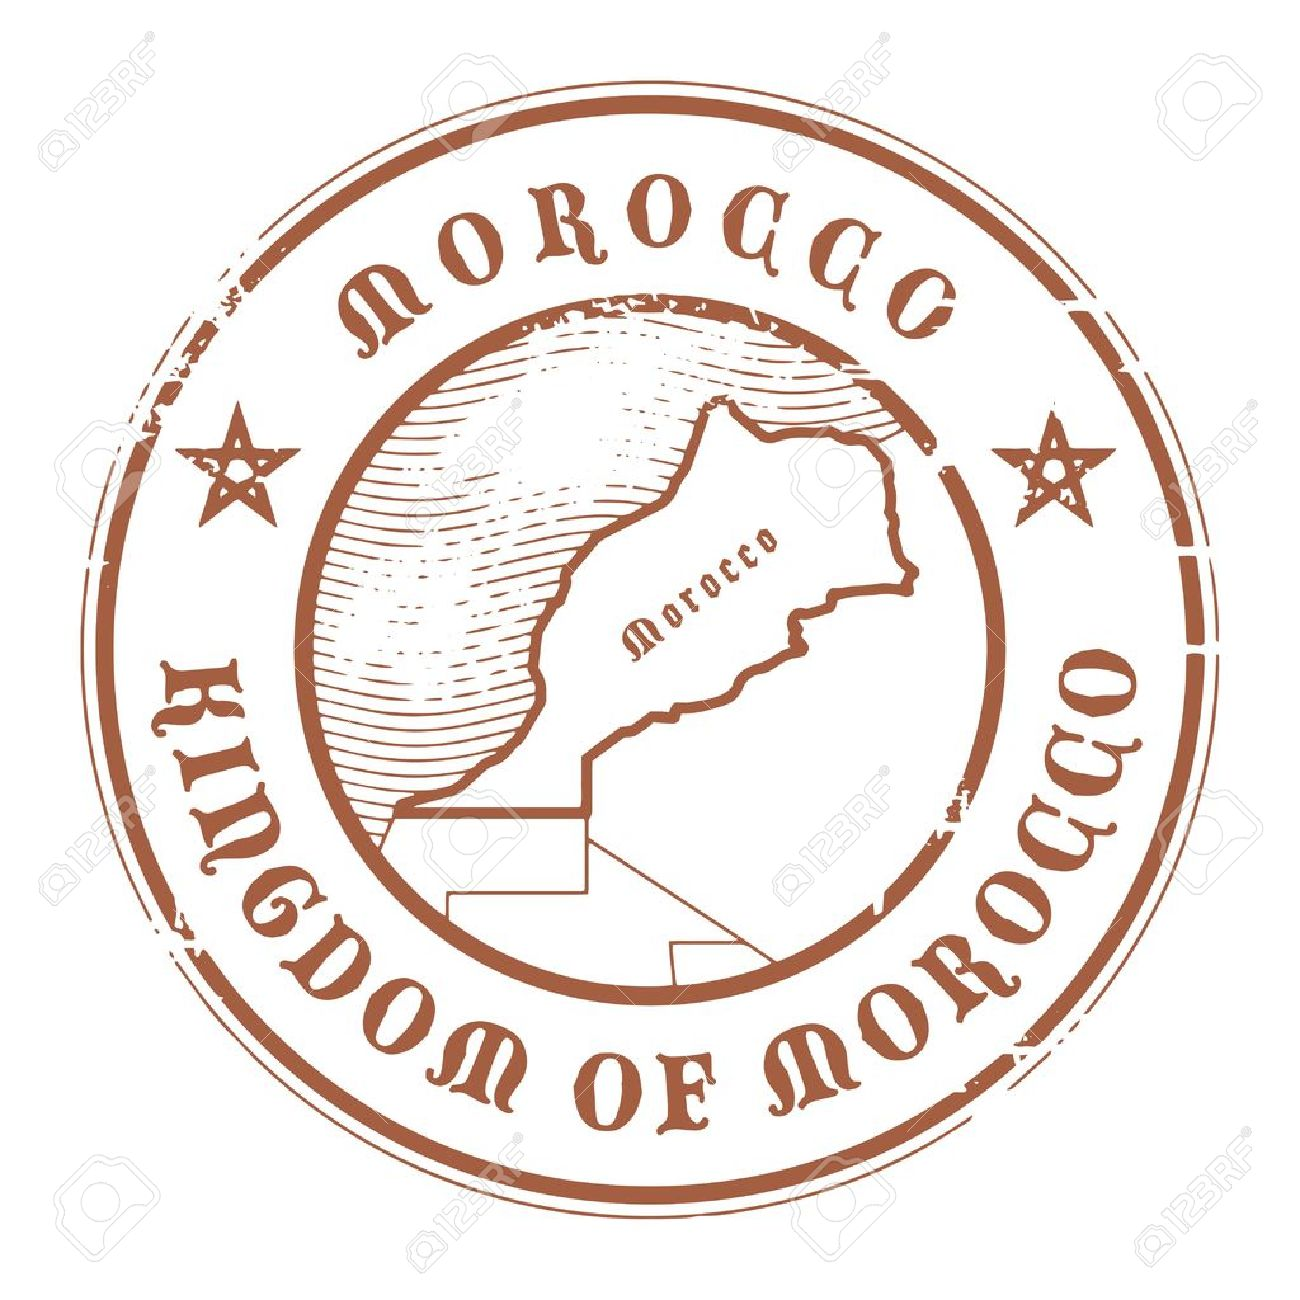 Grunge rubber stamp with the name and map of Morocco Stock Vector - 17215641